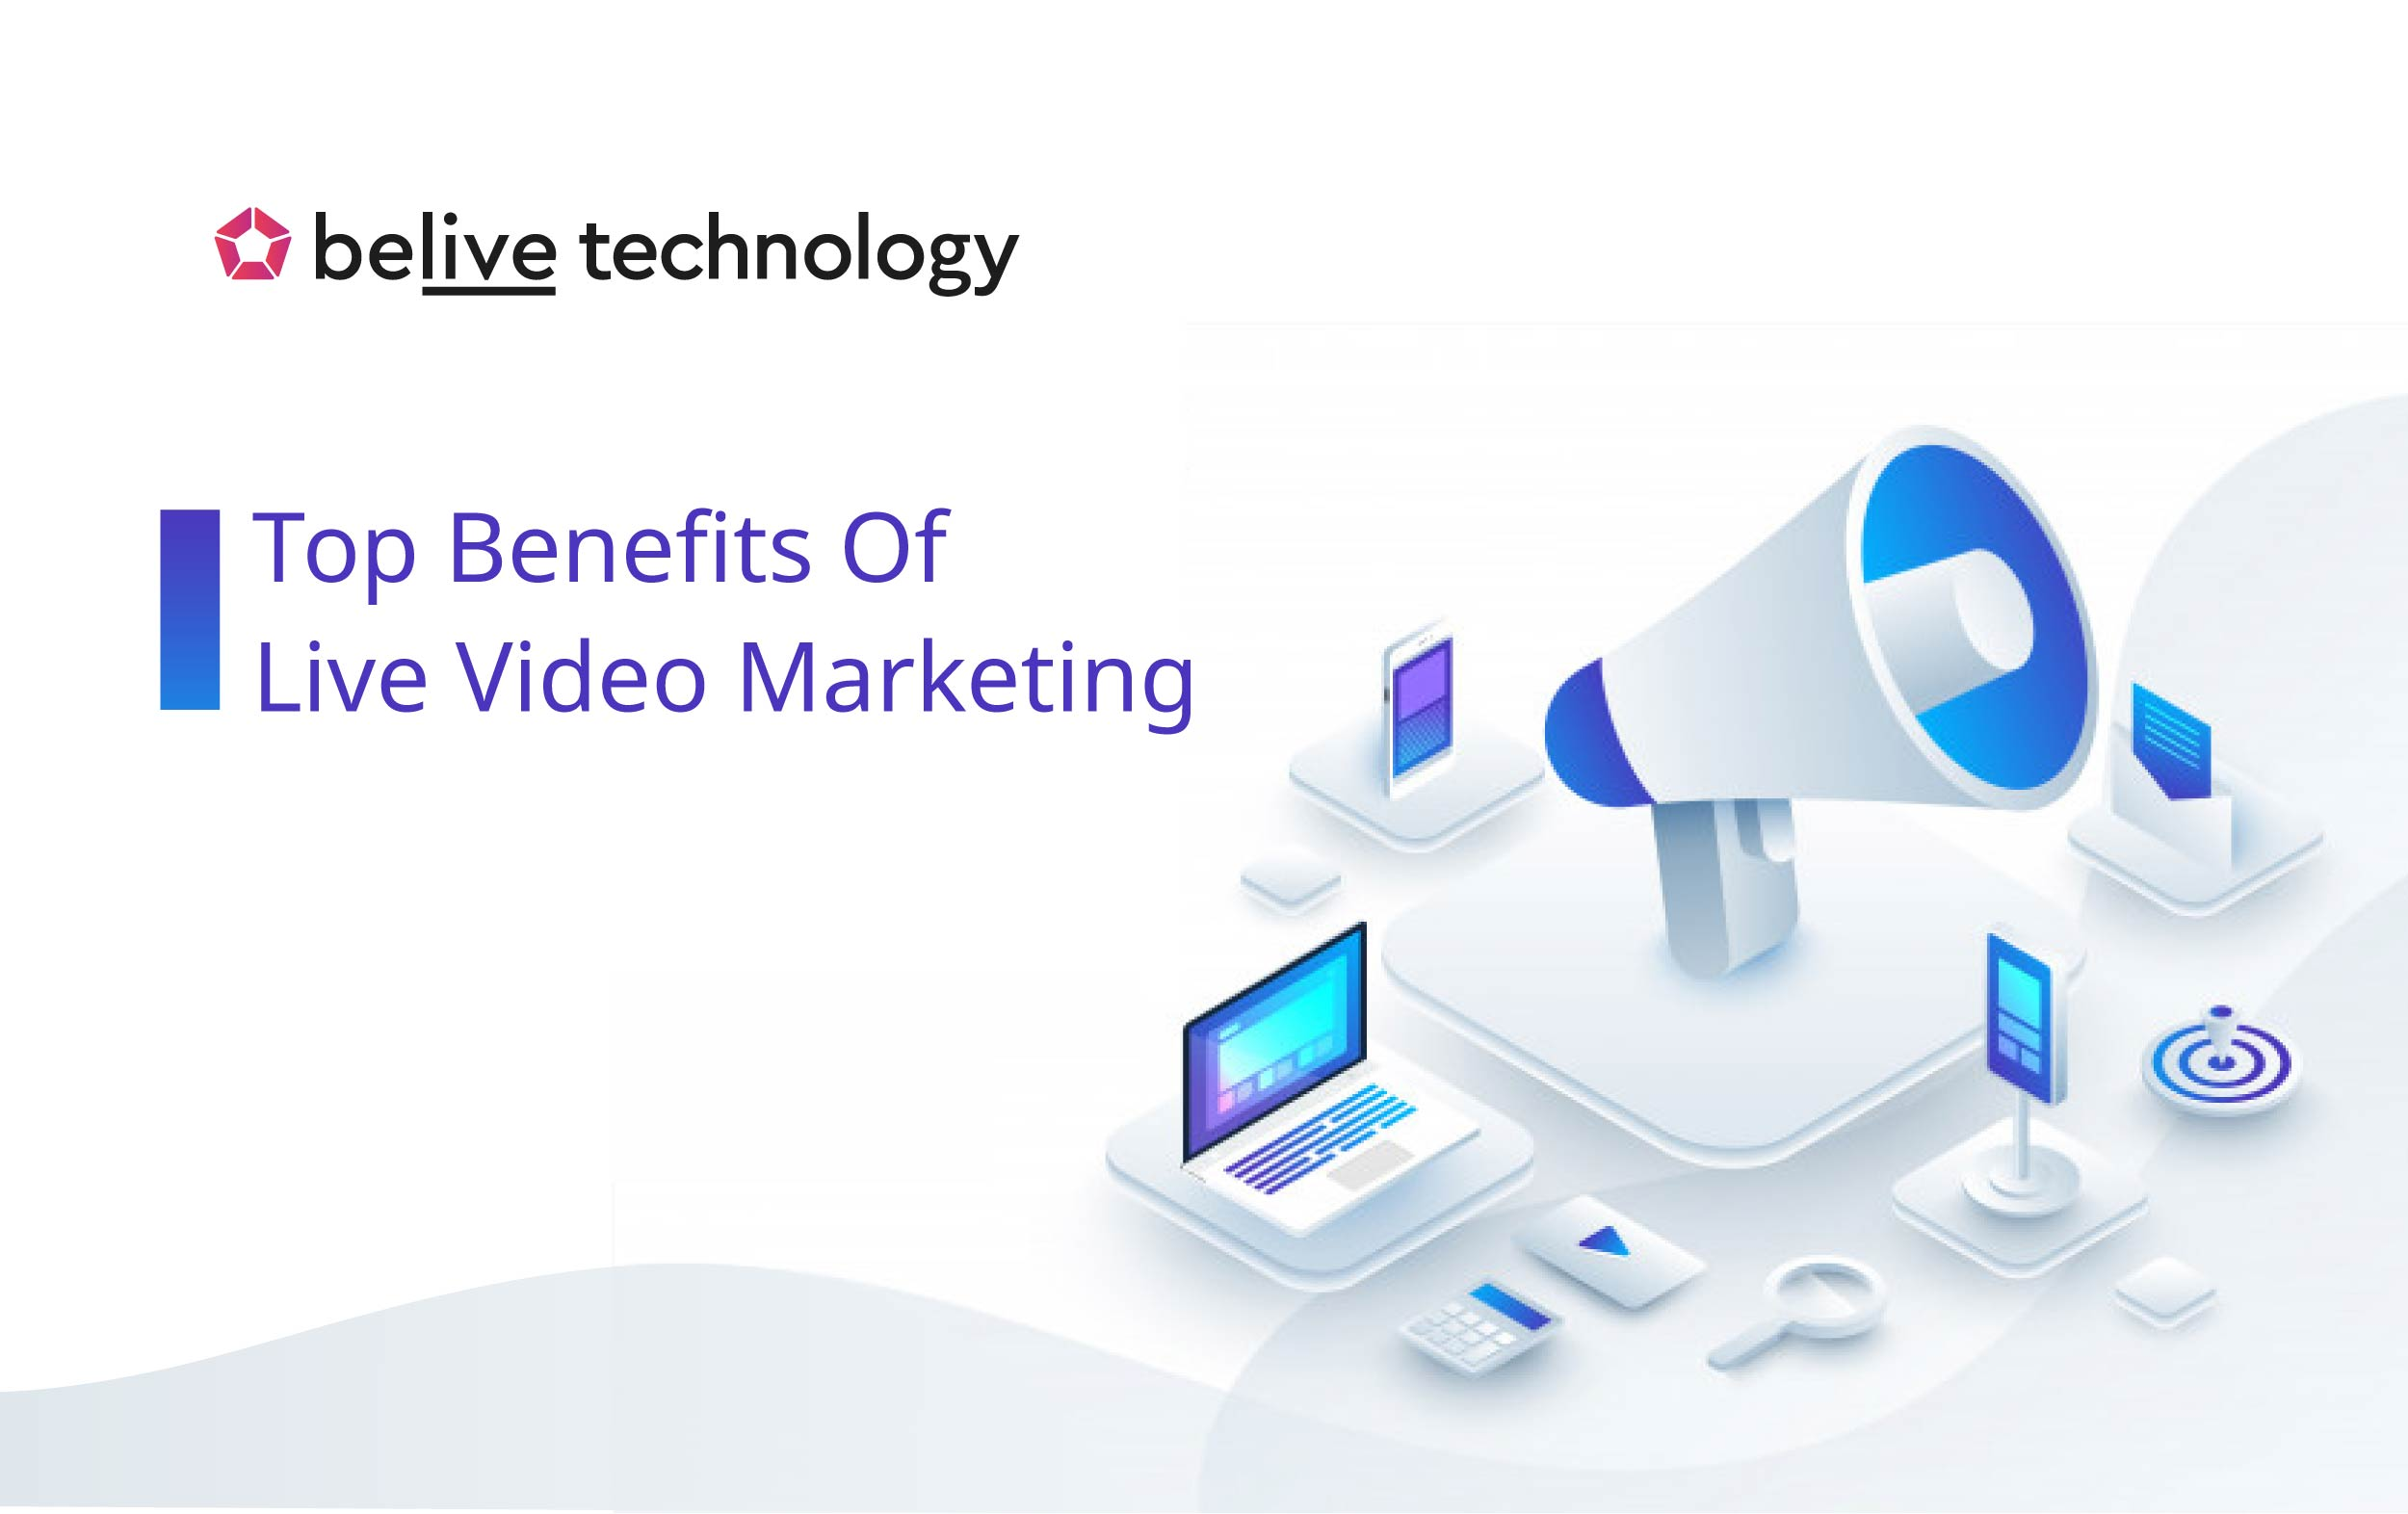 Top Benefits Of Live Video Marketing for 2021 – Is Your Brand Ready?